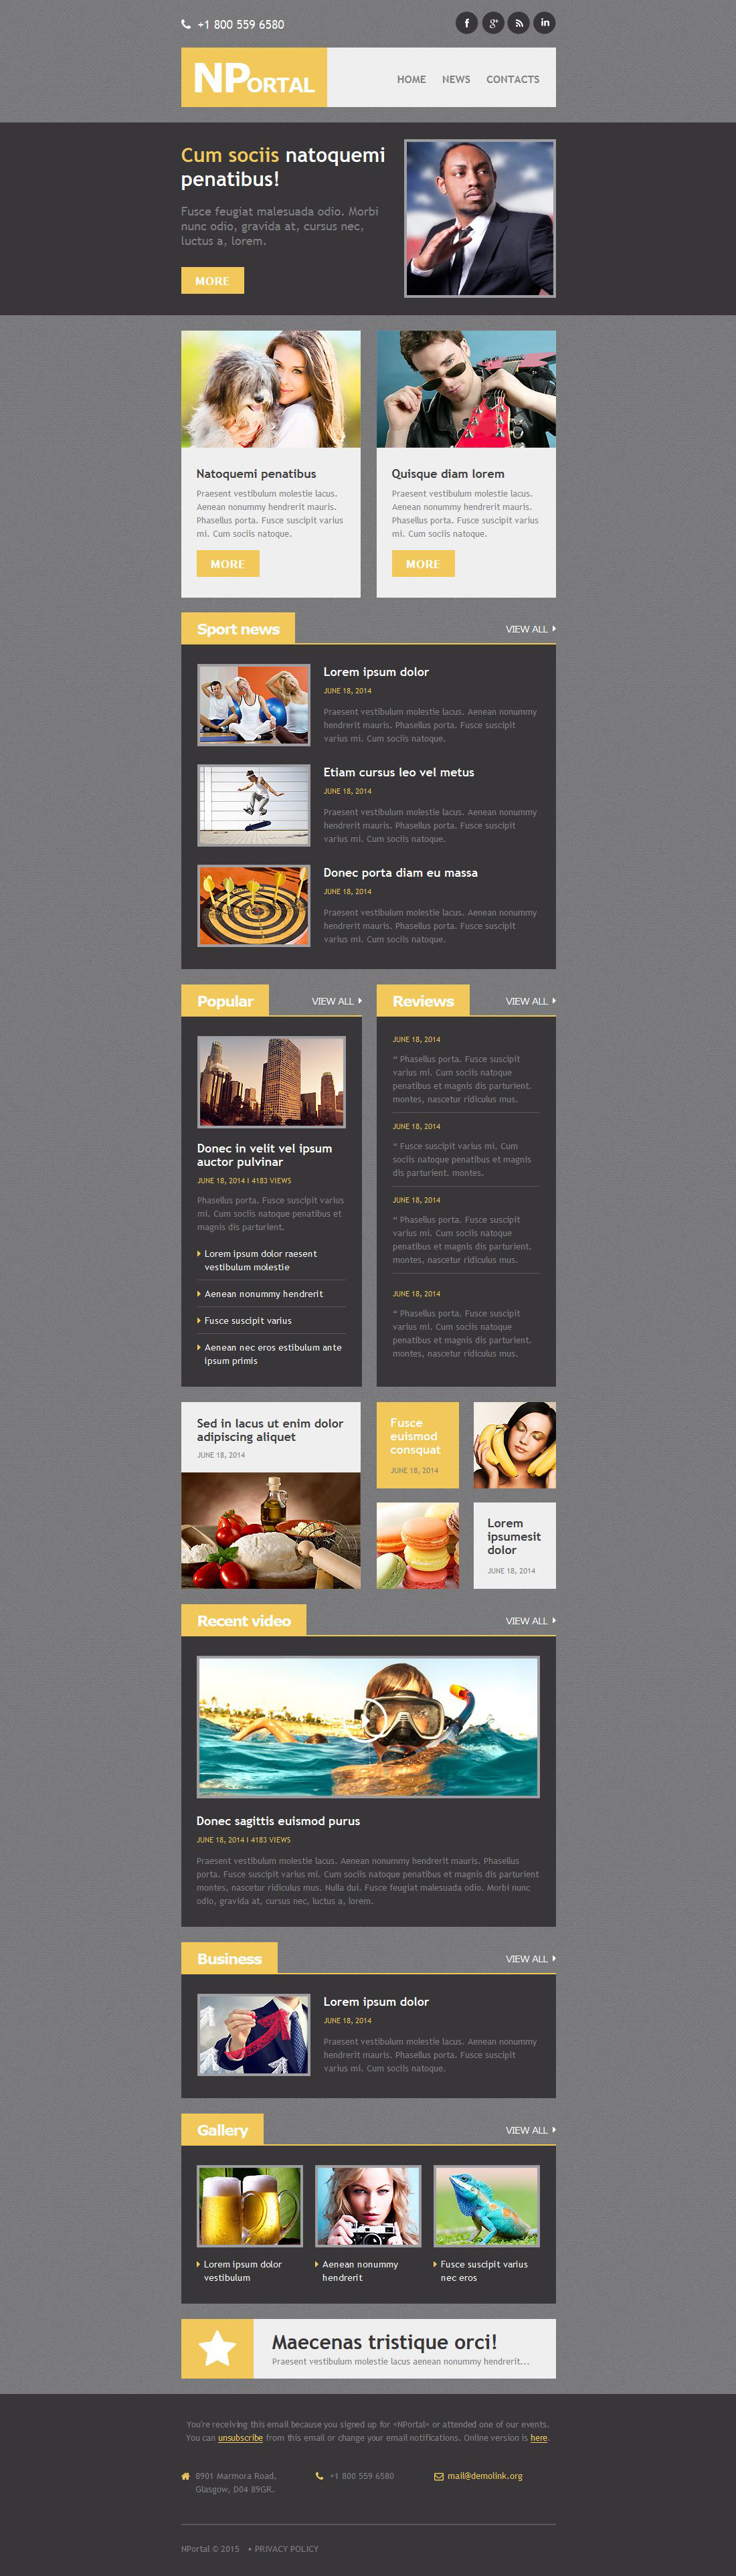 News Portal Responsive Newsletter Template - screenshot